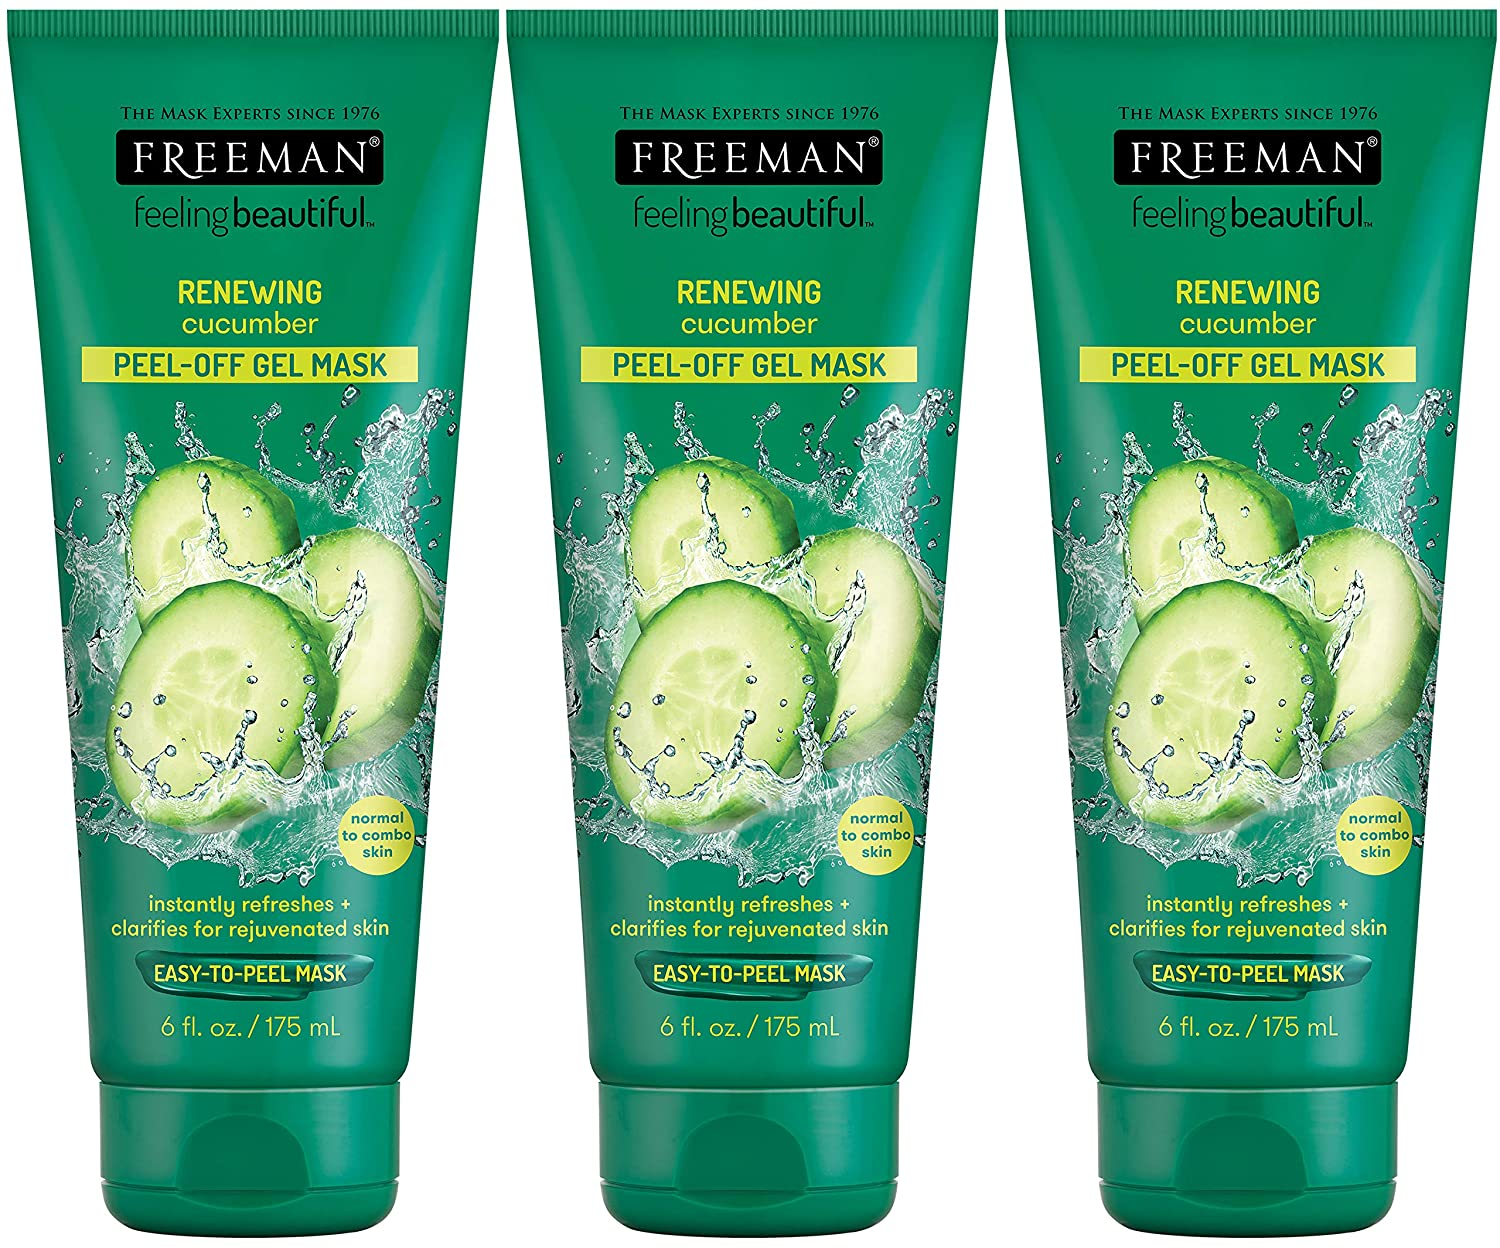 Freeman Cucumber Facial Peel-Off Mask - 6 oz (Pack of 3)